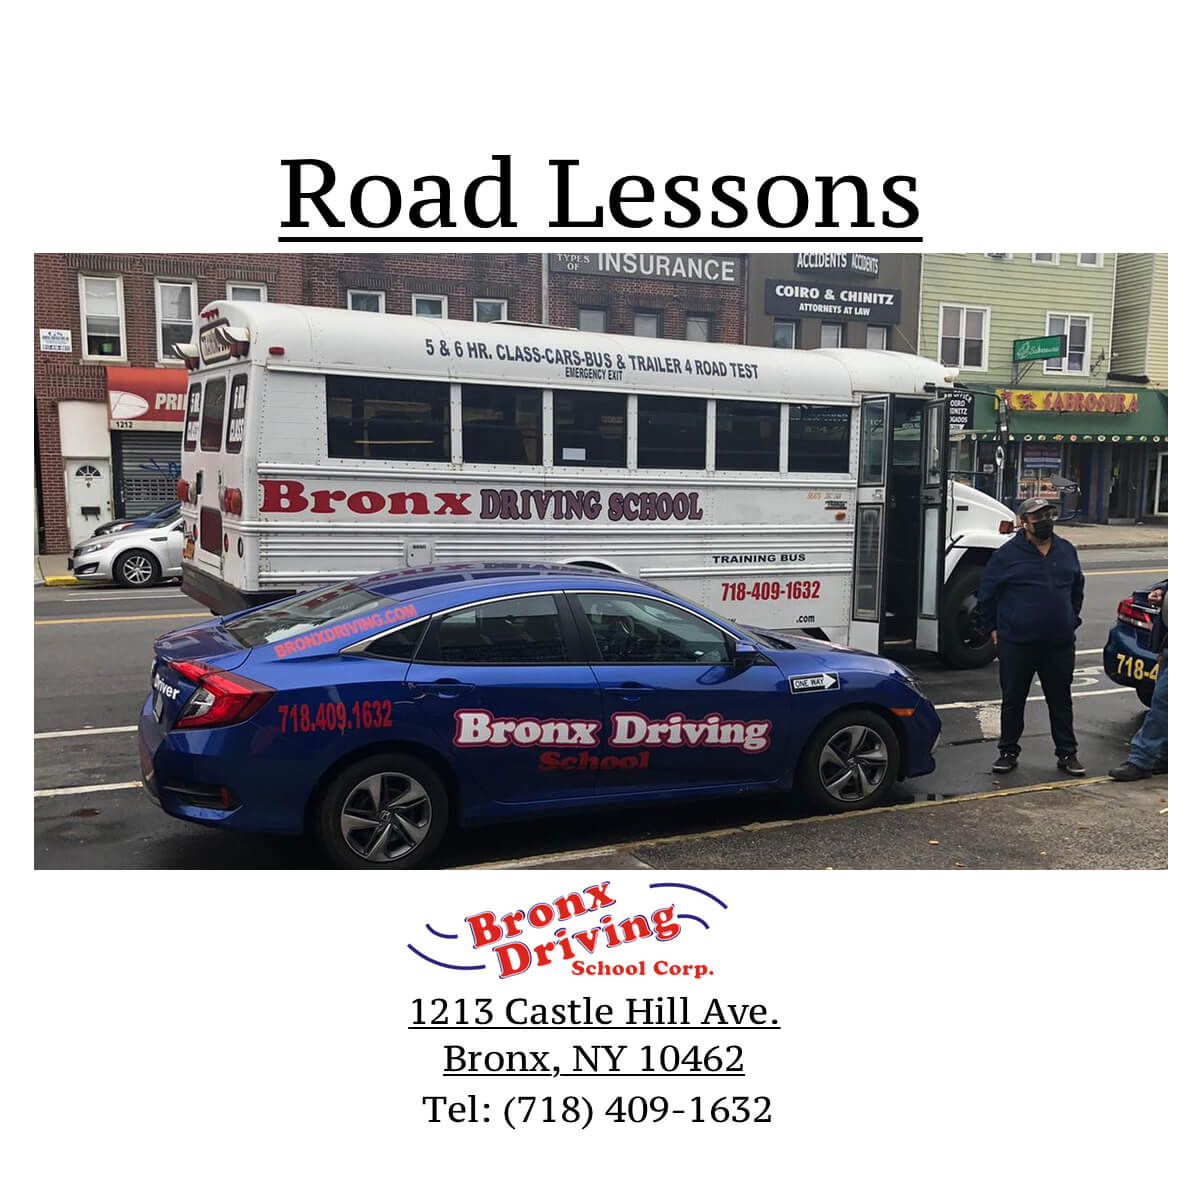 Bronx Driving School Road Lessons